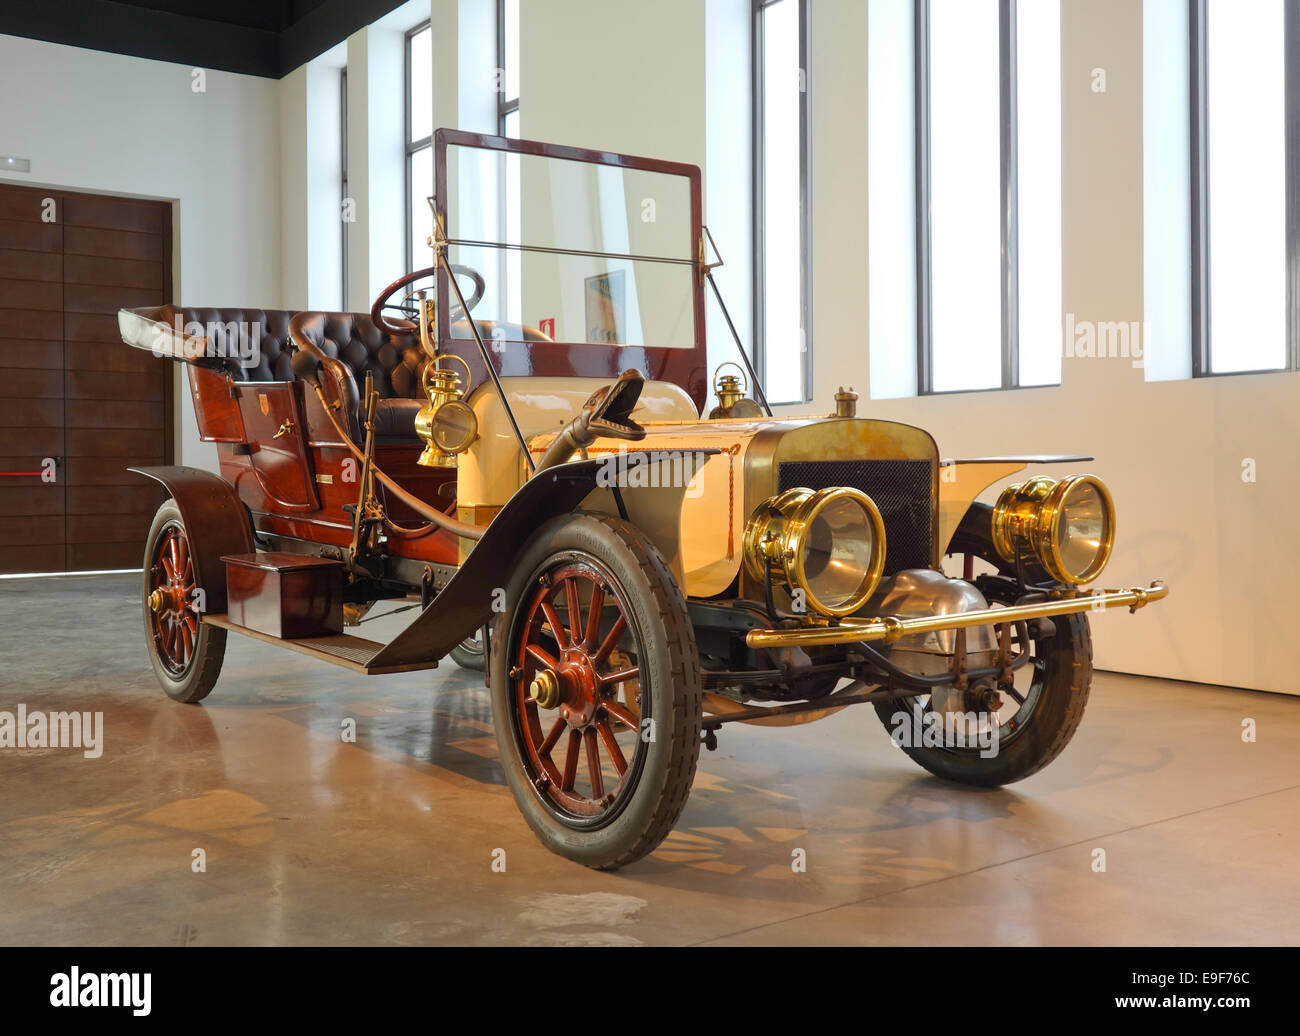 1907 Berliet C2 double-phaéton at Car, Automobile Museum of Málaga, Andalusia, Spain. - Stock Image